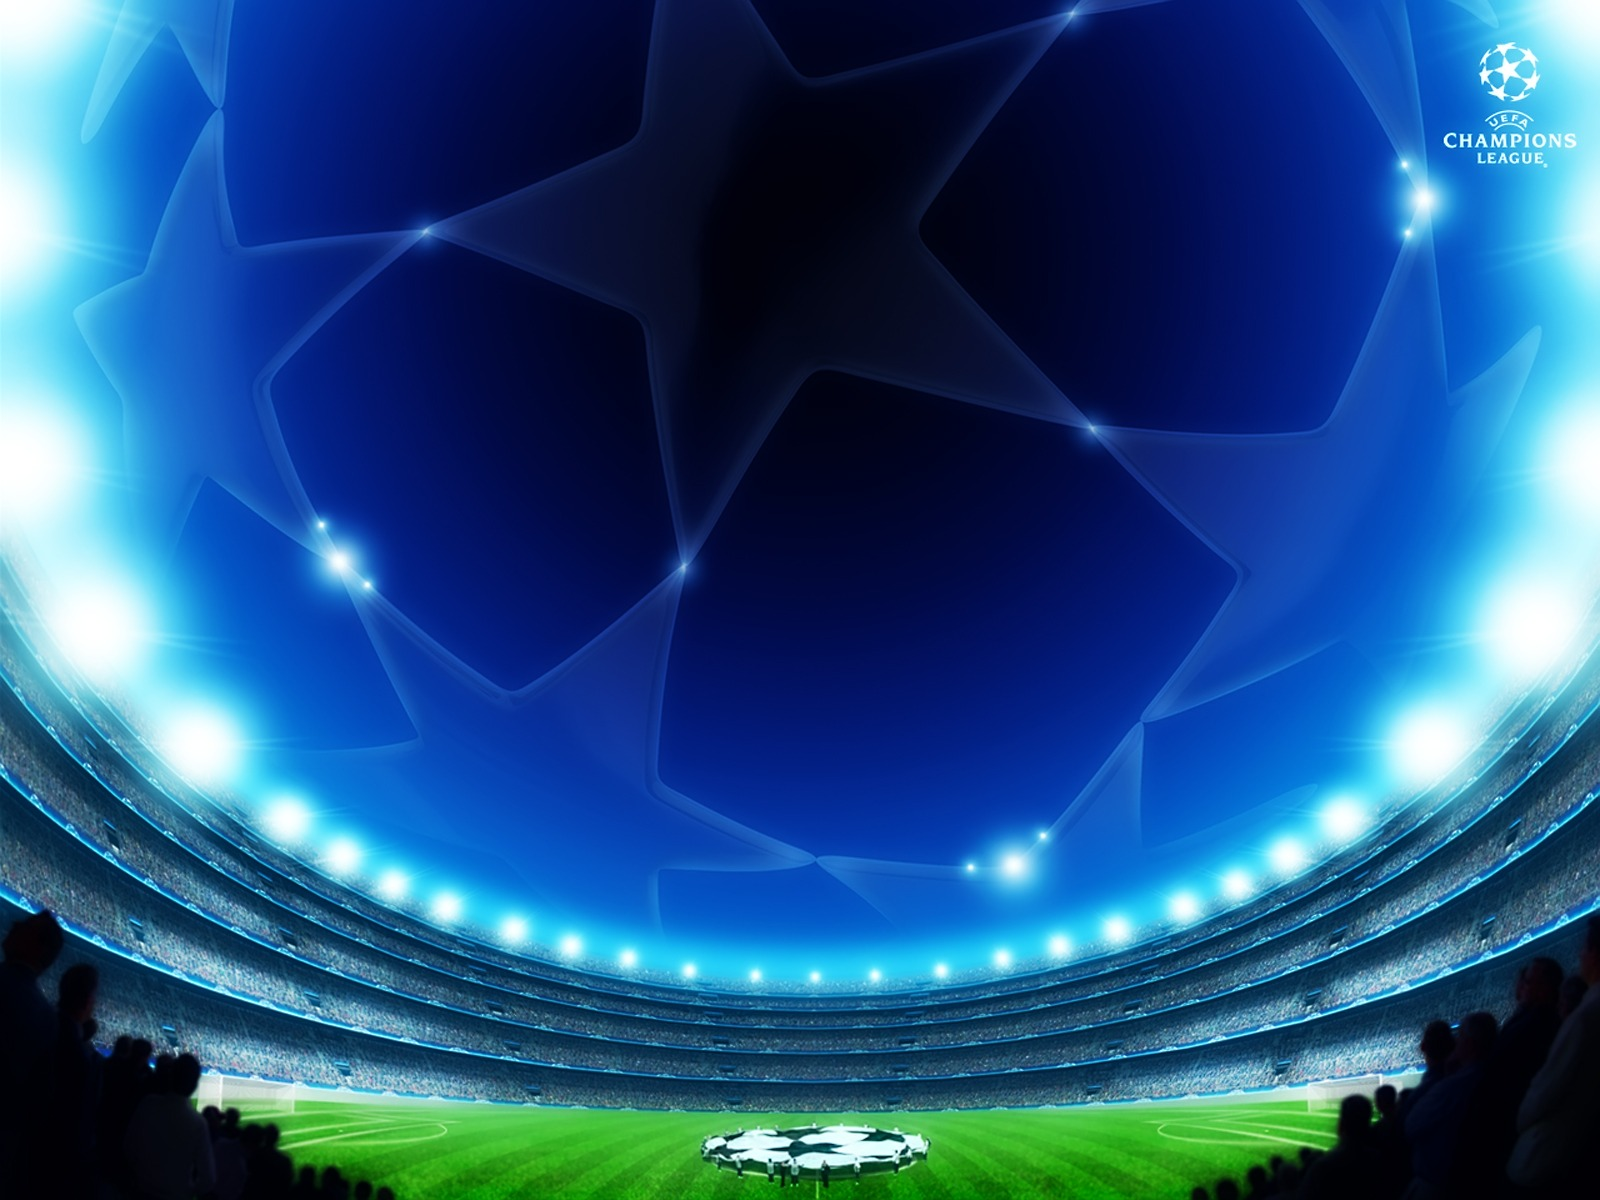 Wallpaper Football.Com